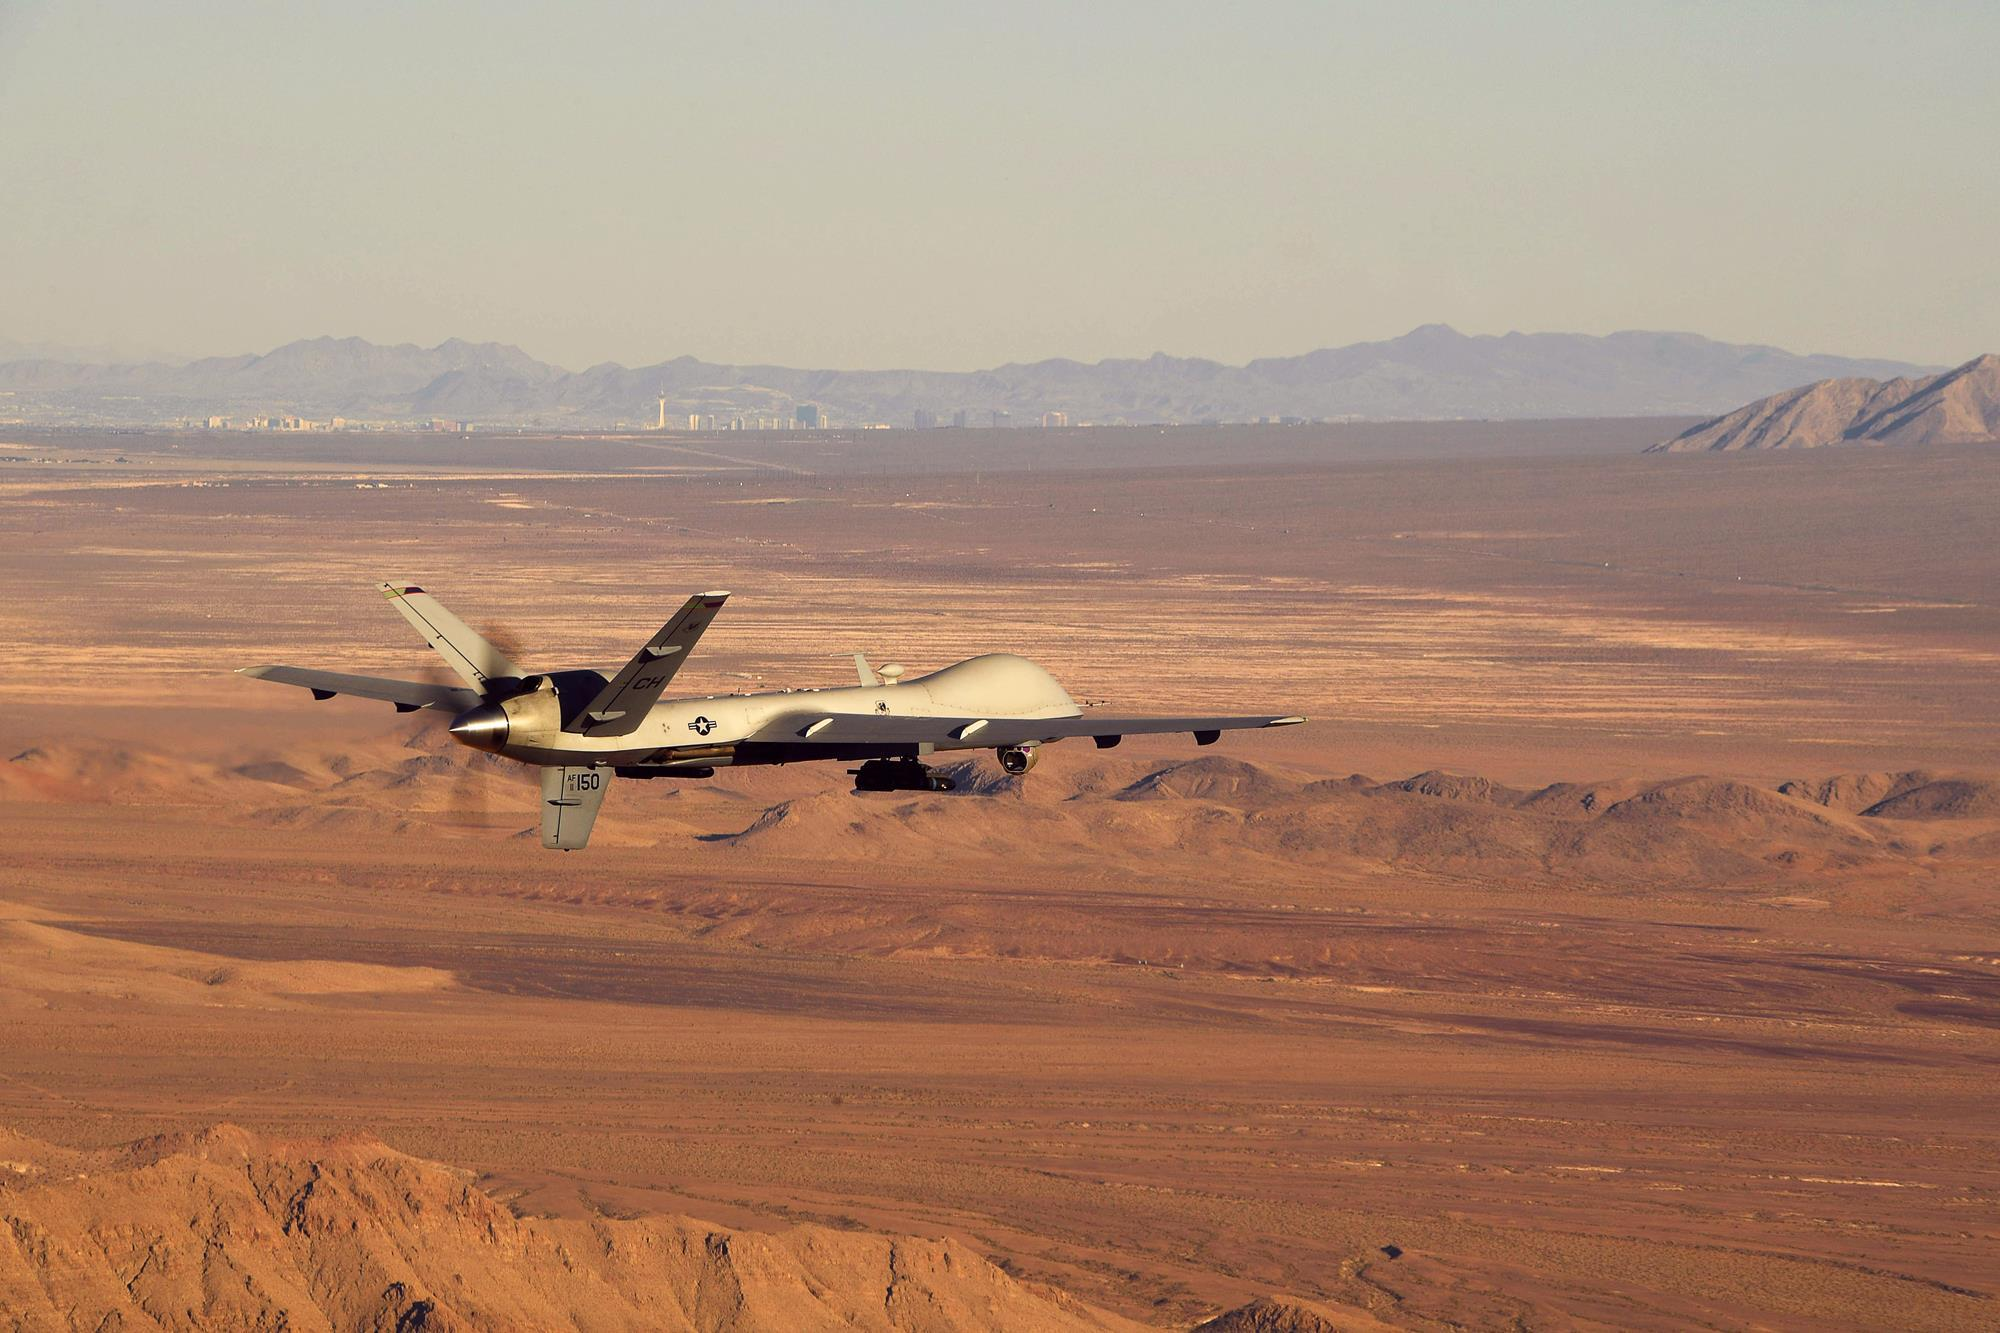 General Atomics tests space laser communication system for MQ-9